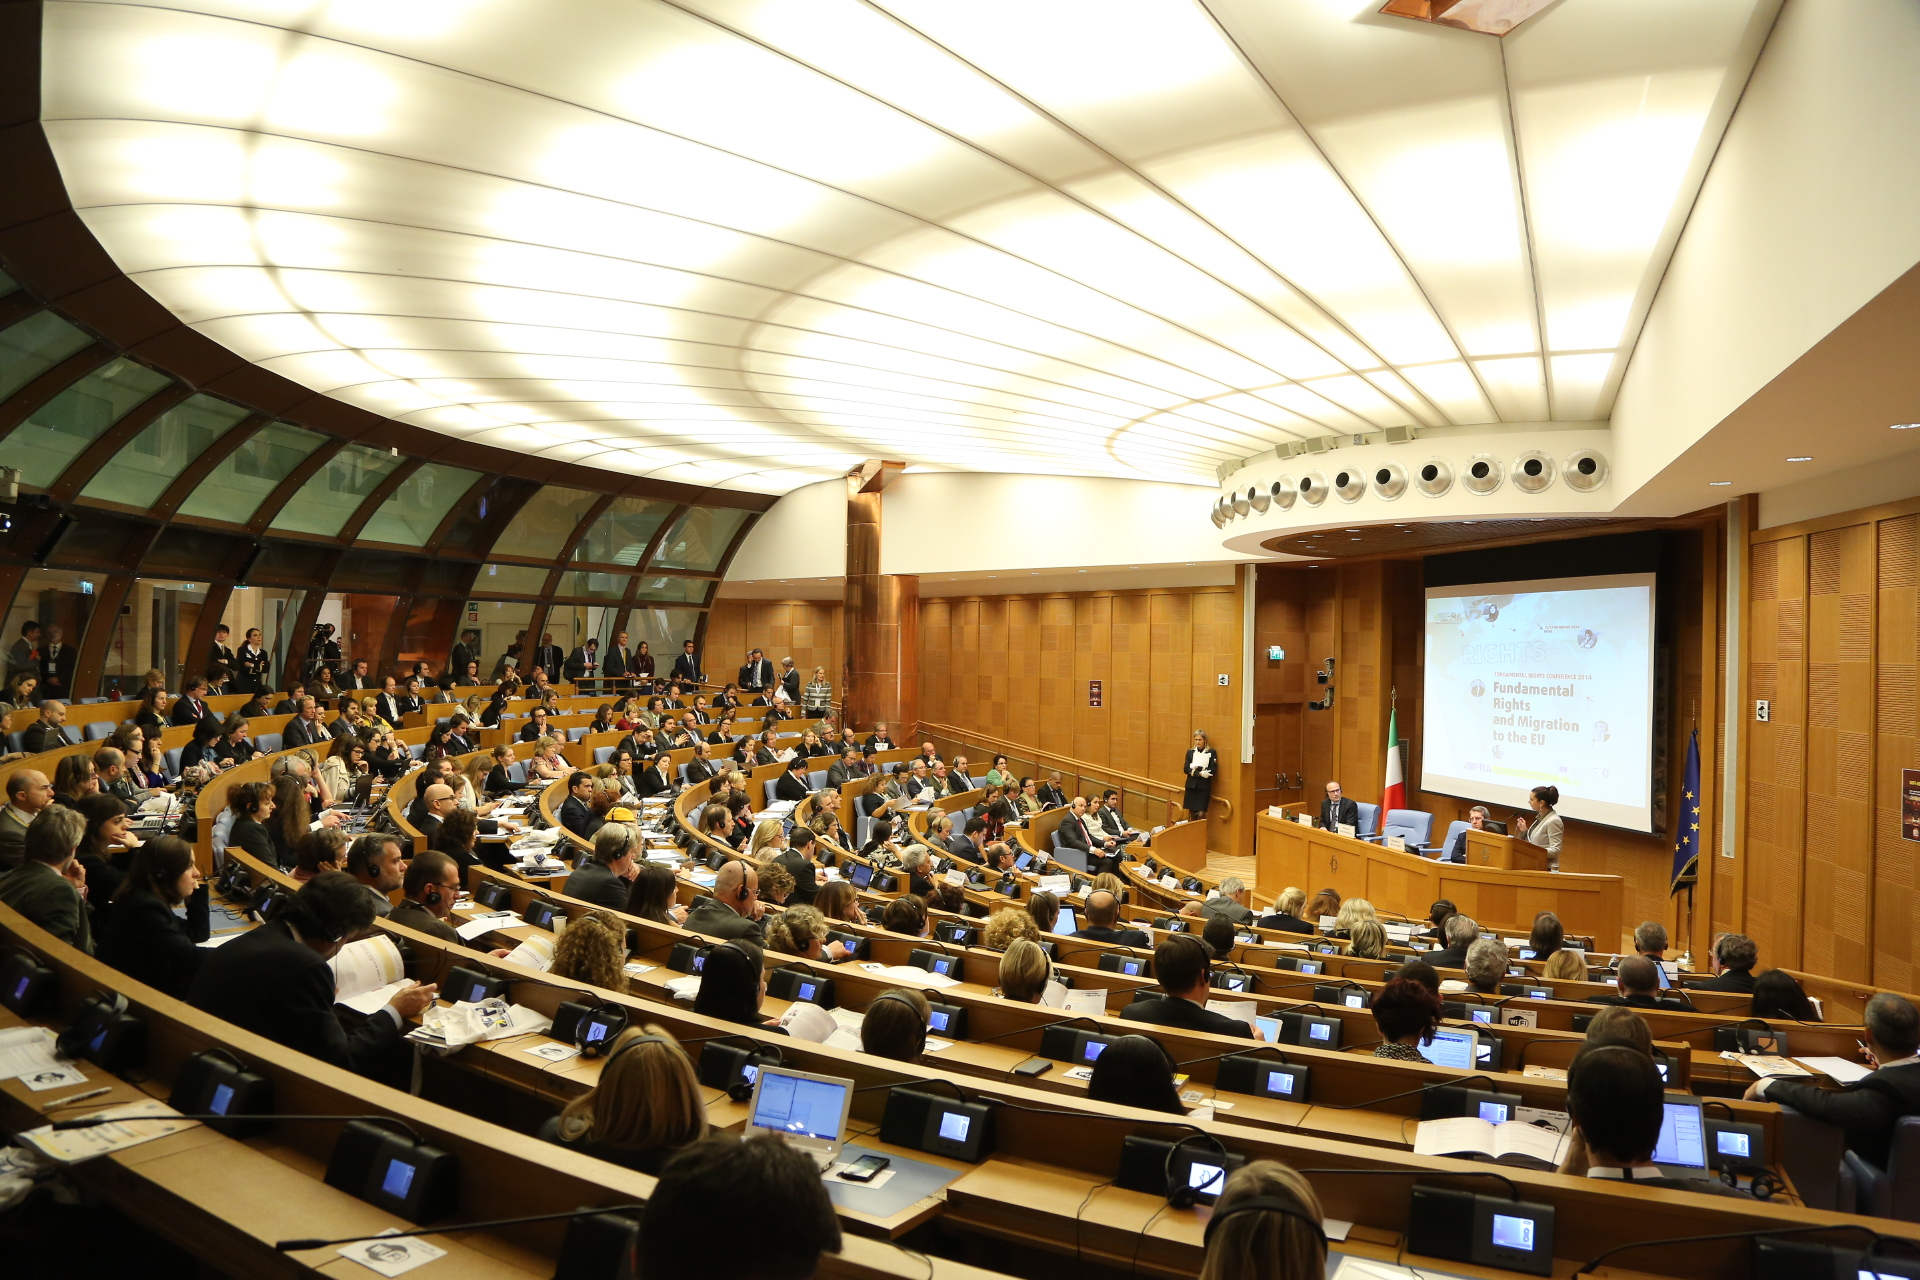 The start of the FRC in Rome, 10 Oct 2014